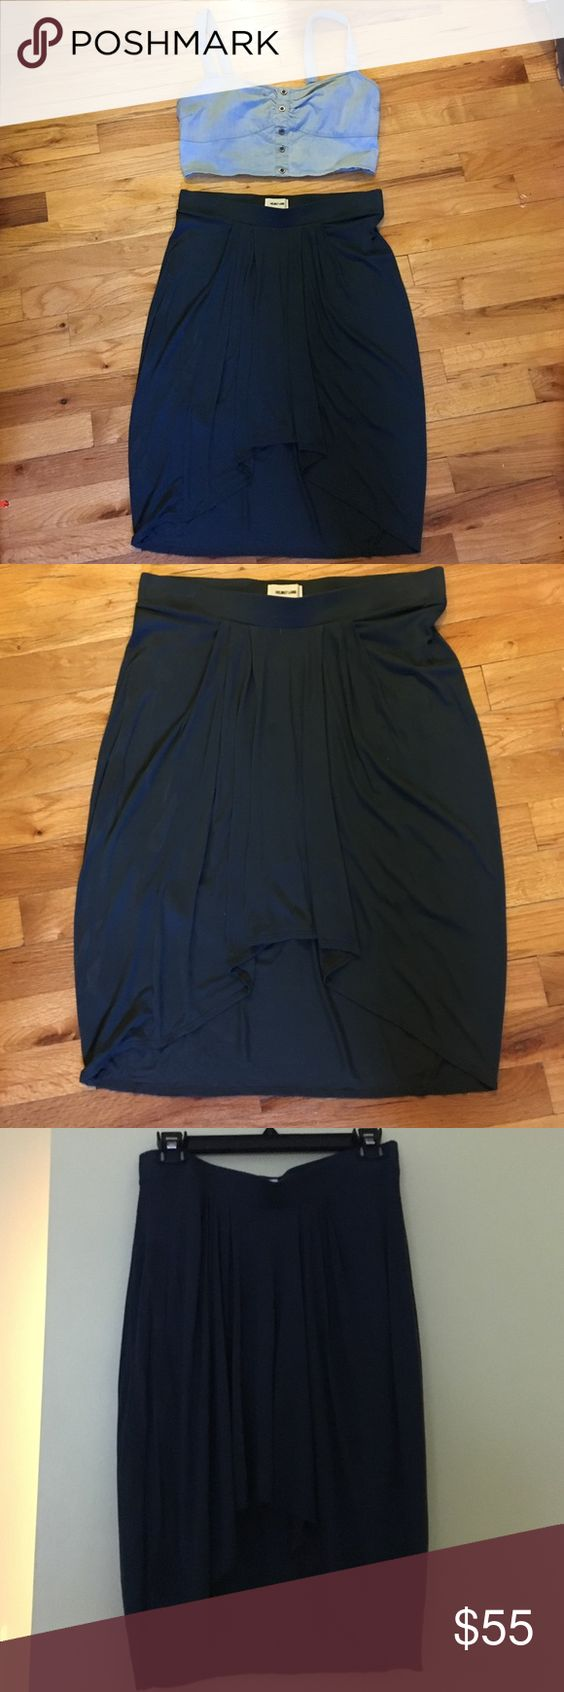 Helmut Lang Hi-Lo Skirt Hi Lo jersey skirt. Size M fits an 8. The fabric is a pretty green-blue color but looks like a greenish grey in certain lighting. Helmut Lang Skirts High Low